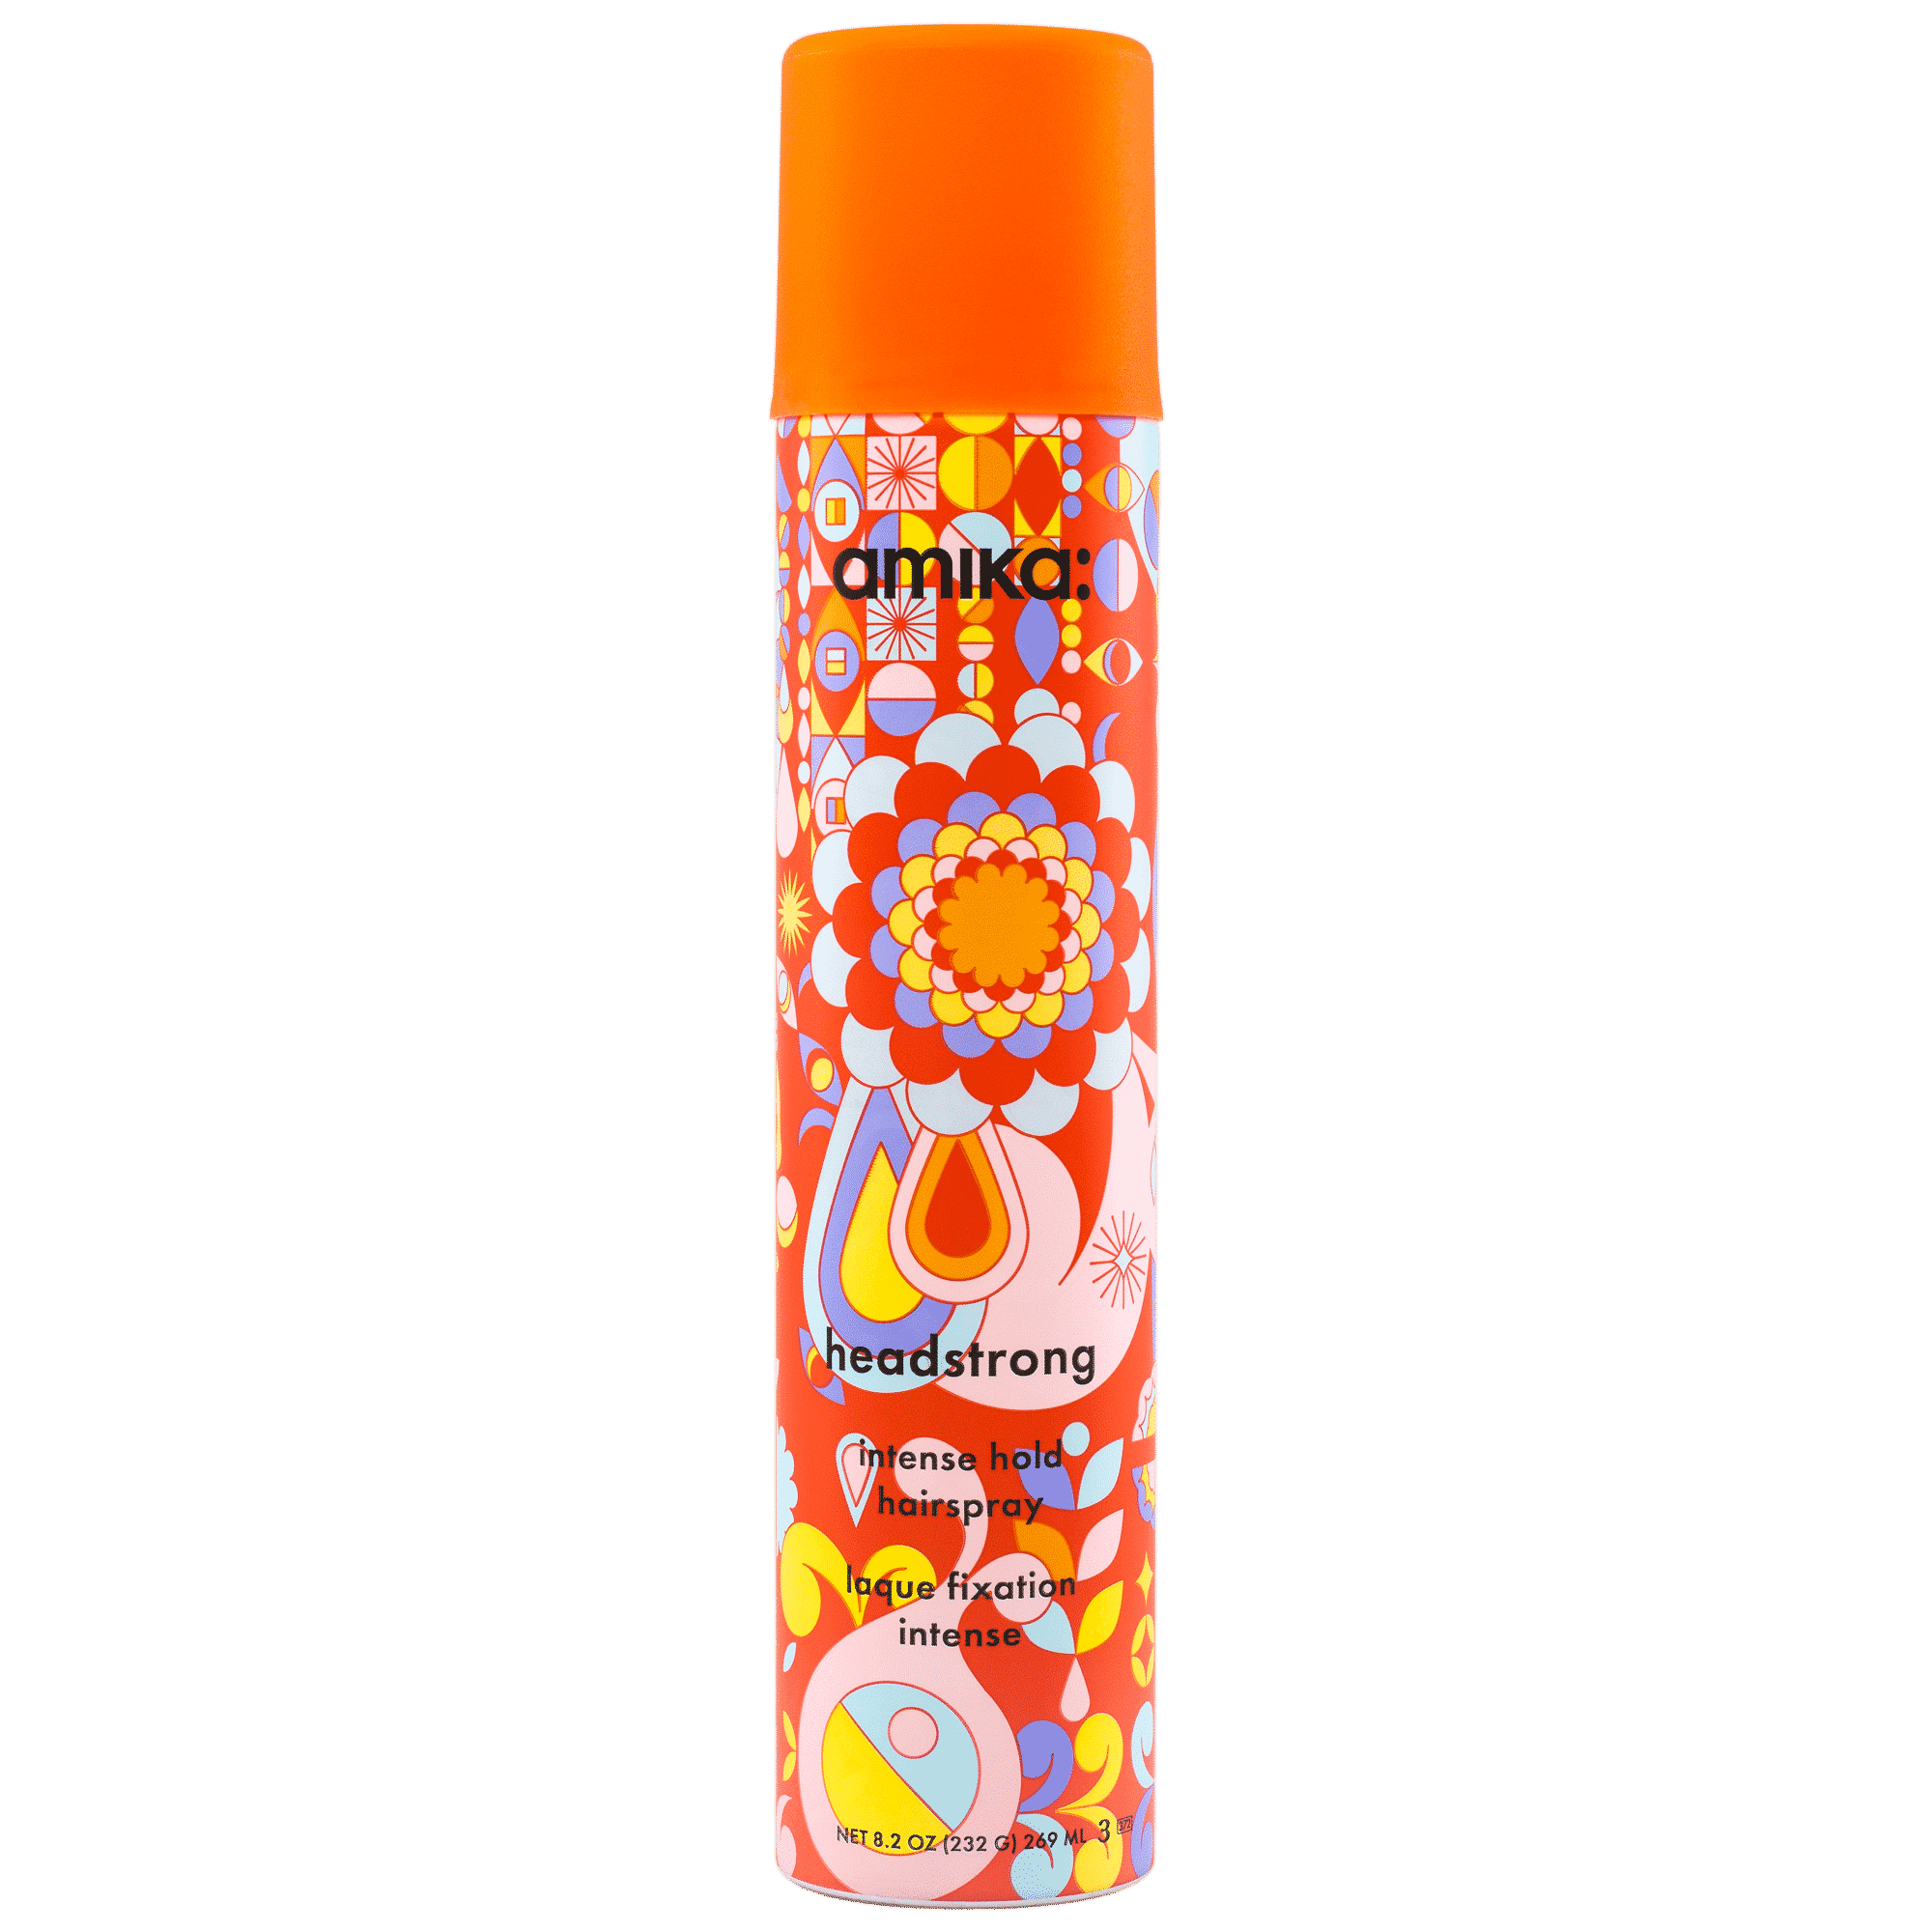 Amika Headstrong Intense Hairspray